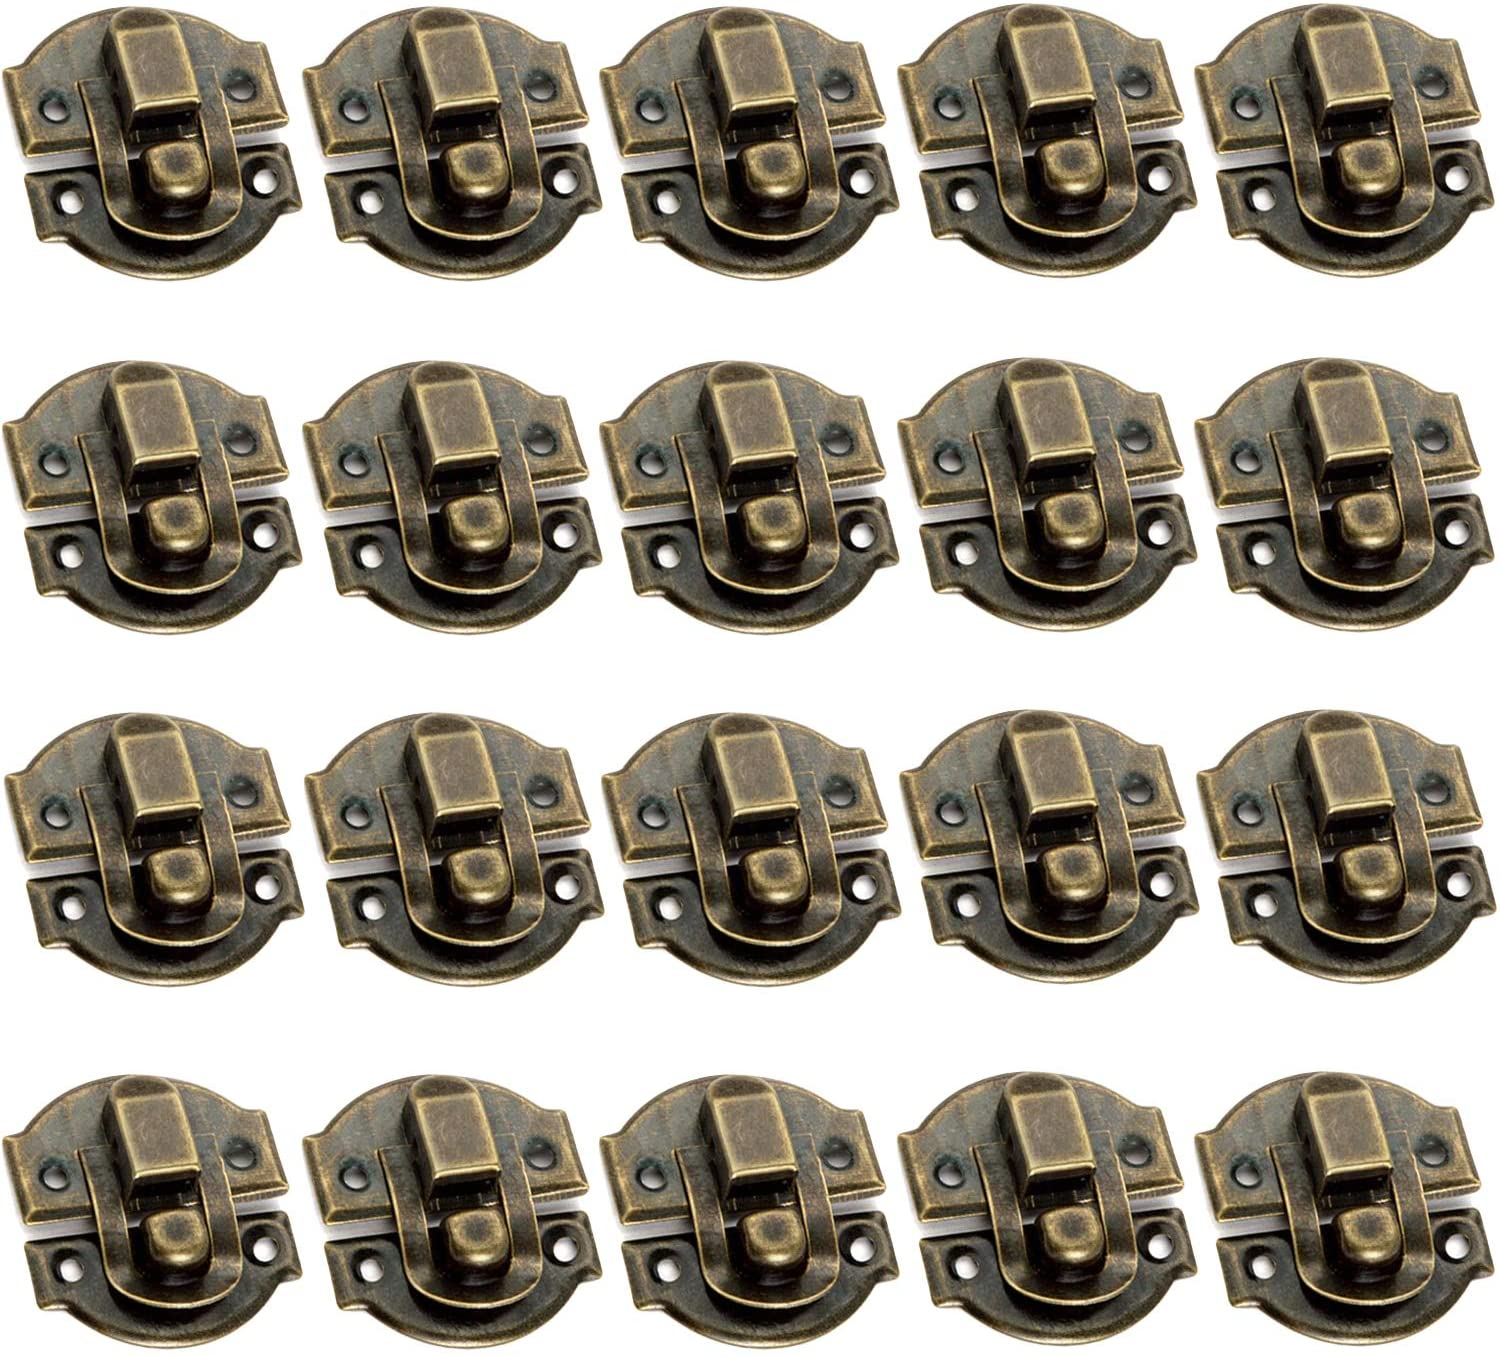 Dasunny 20 Sets Vintage Tiny Hasp Latch, Antique Style Bronze Toggle Latch Hasp Lock for Wood Box Furniture Cabinet Drawer Wardrobe, 1.2 x 1.1 Inch